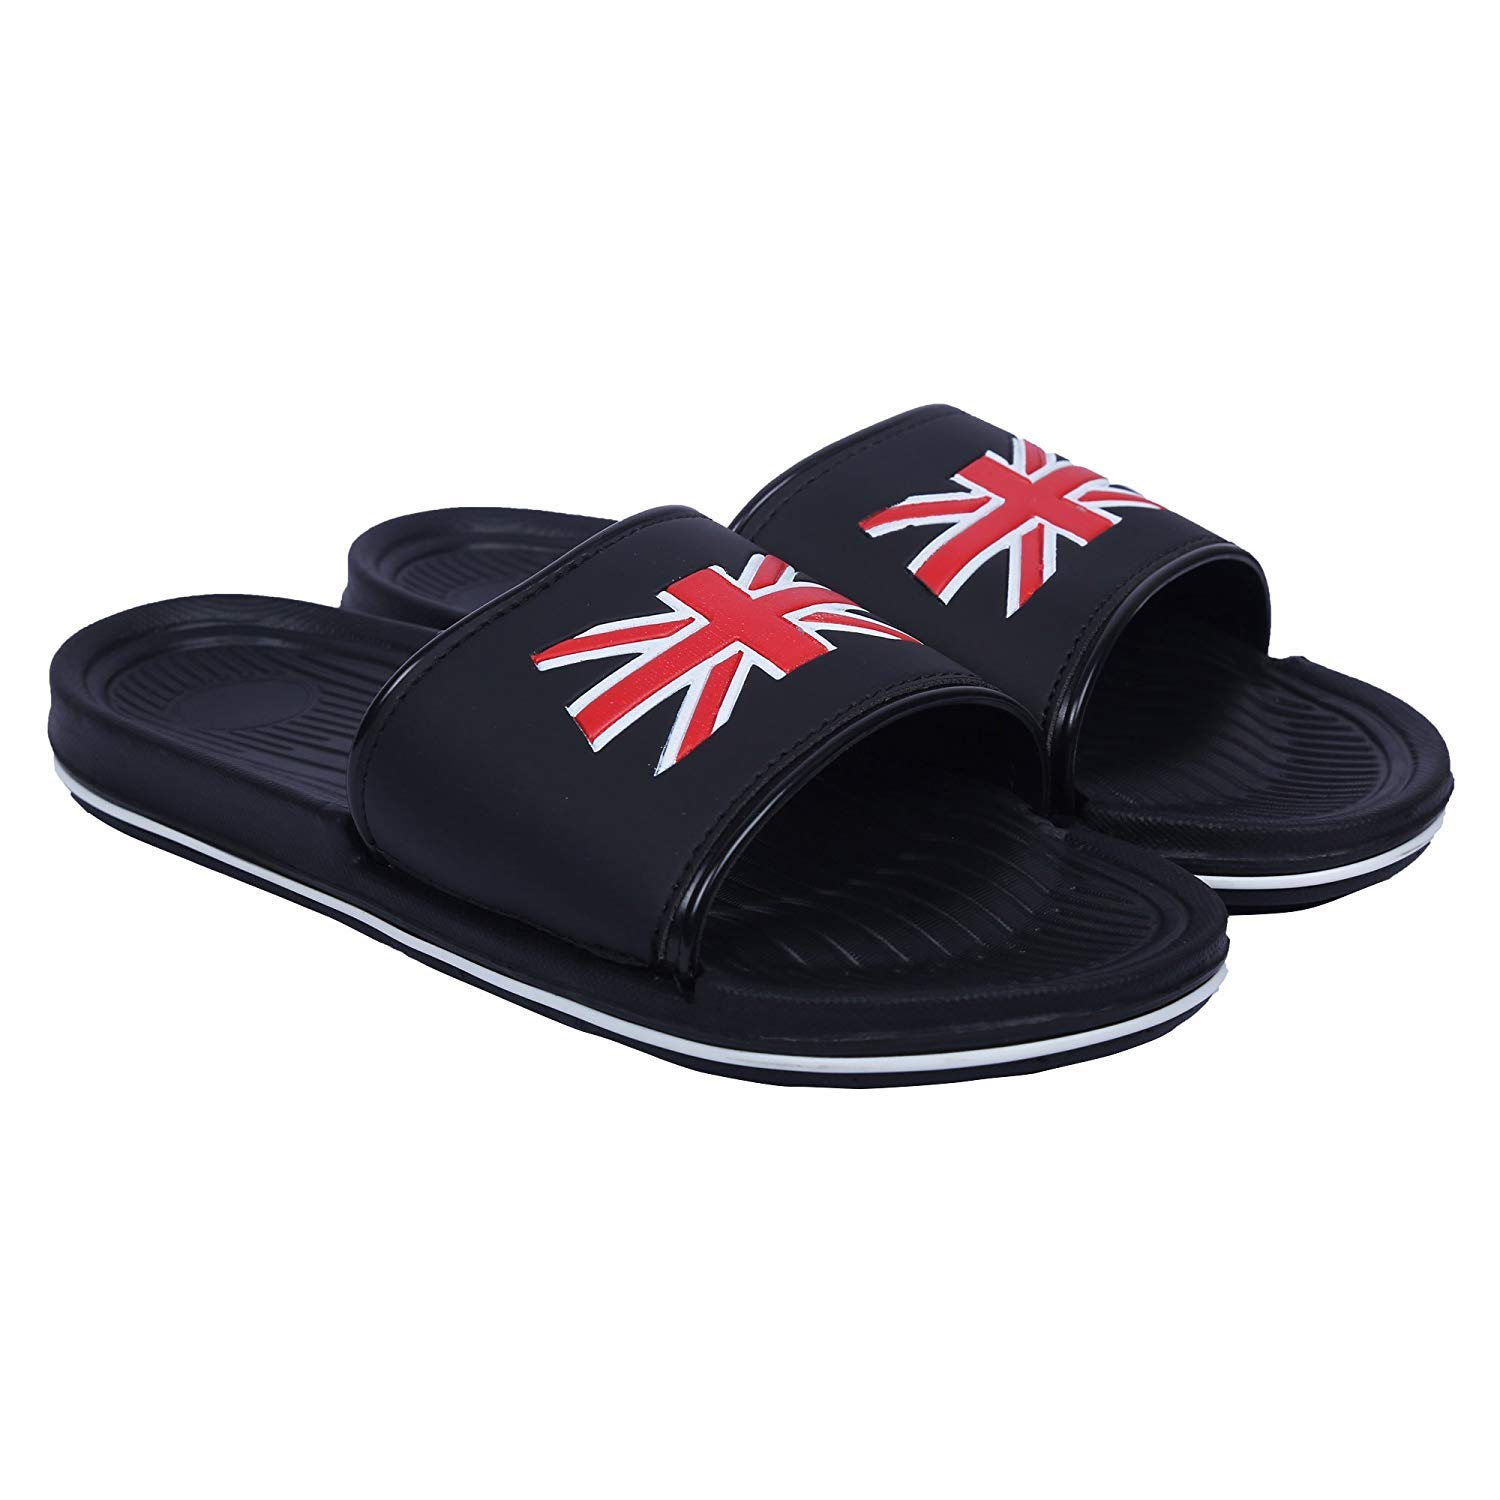 MoRchi Mens and Boys Slippers and Flip Flops: Amazon.in: Shoes & Handbags